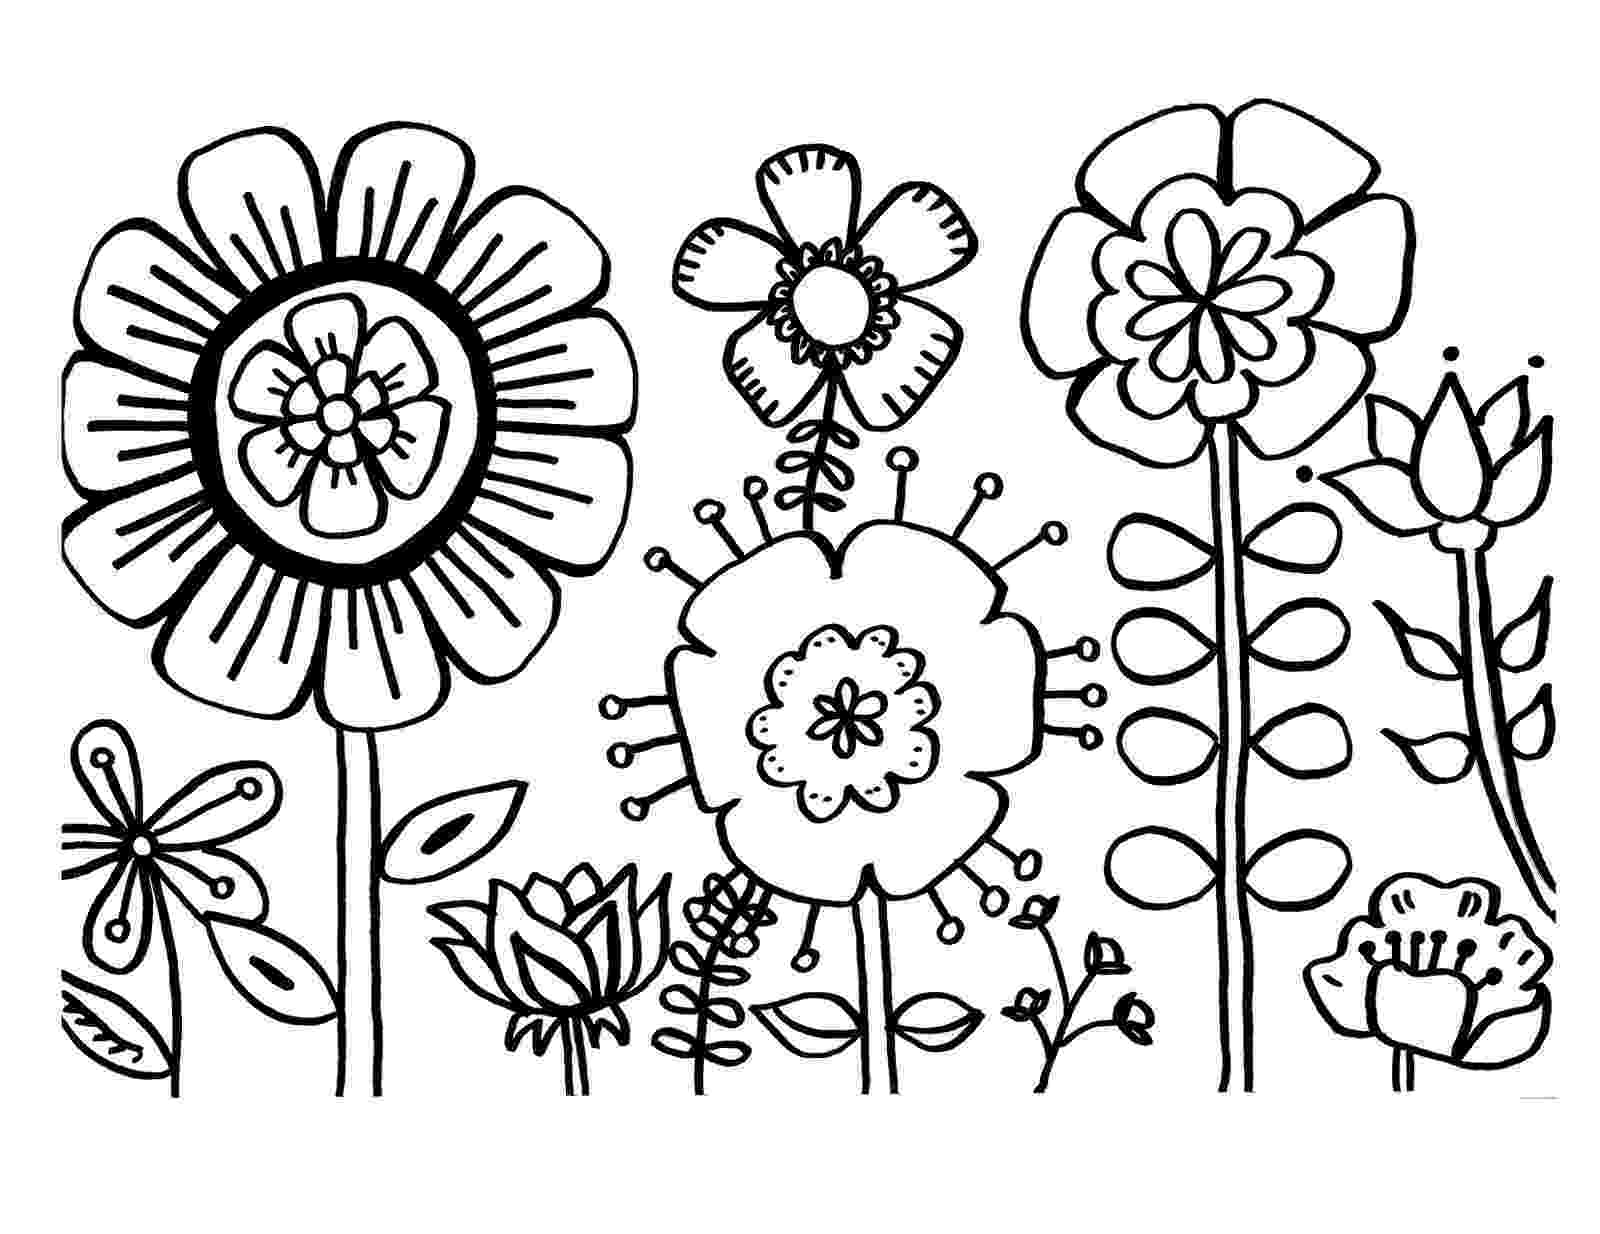 flower images to color downloadable flower printables images flower to color